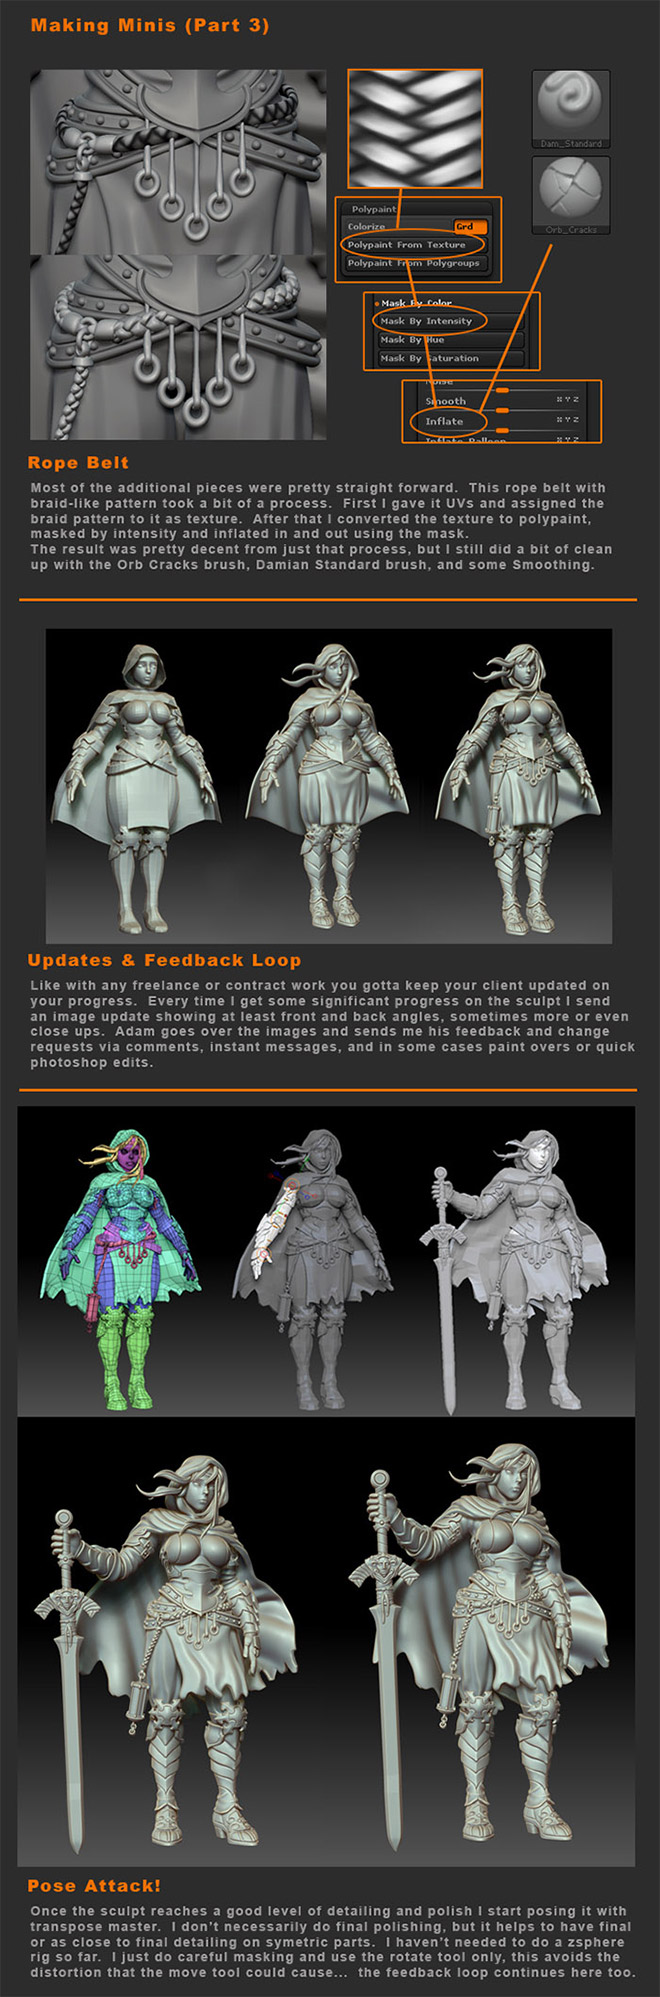 Making-of-Kingdom-Death-Minis-by-Hector-Moran3